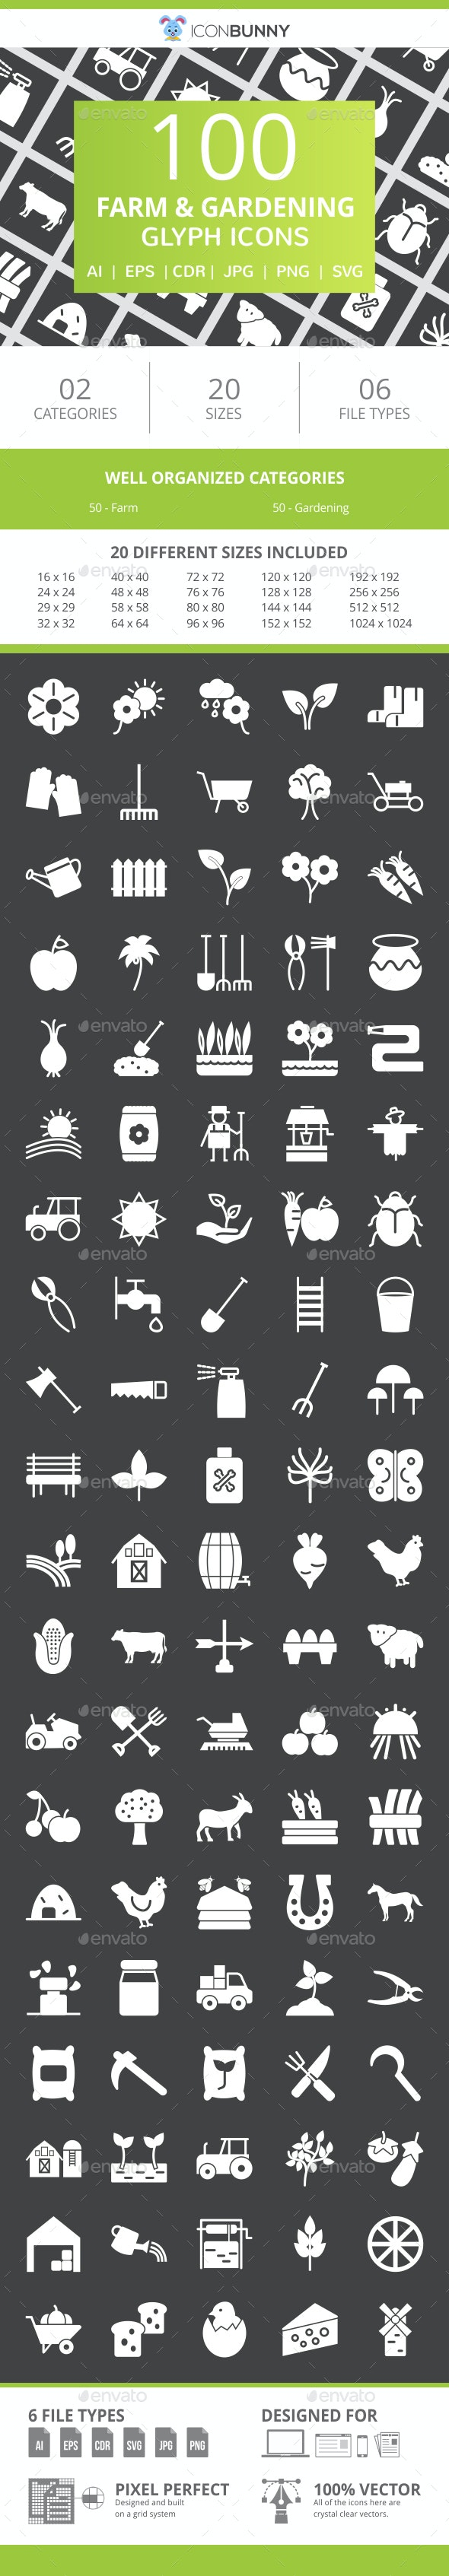 100 Farm & Gardening Glyph Inverted Icons - Icons